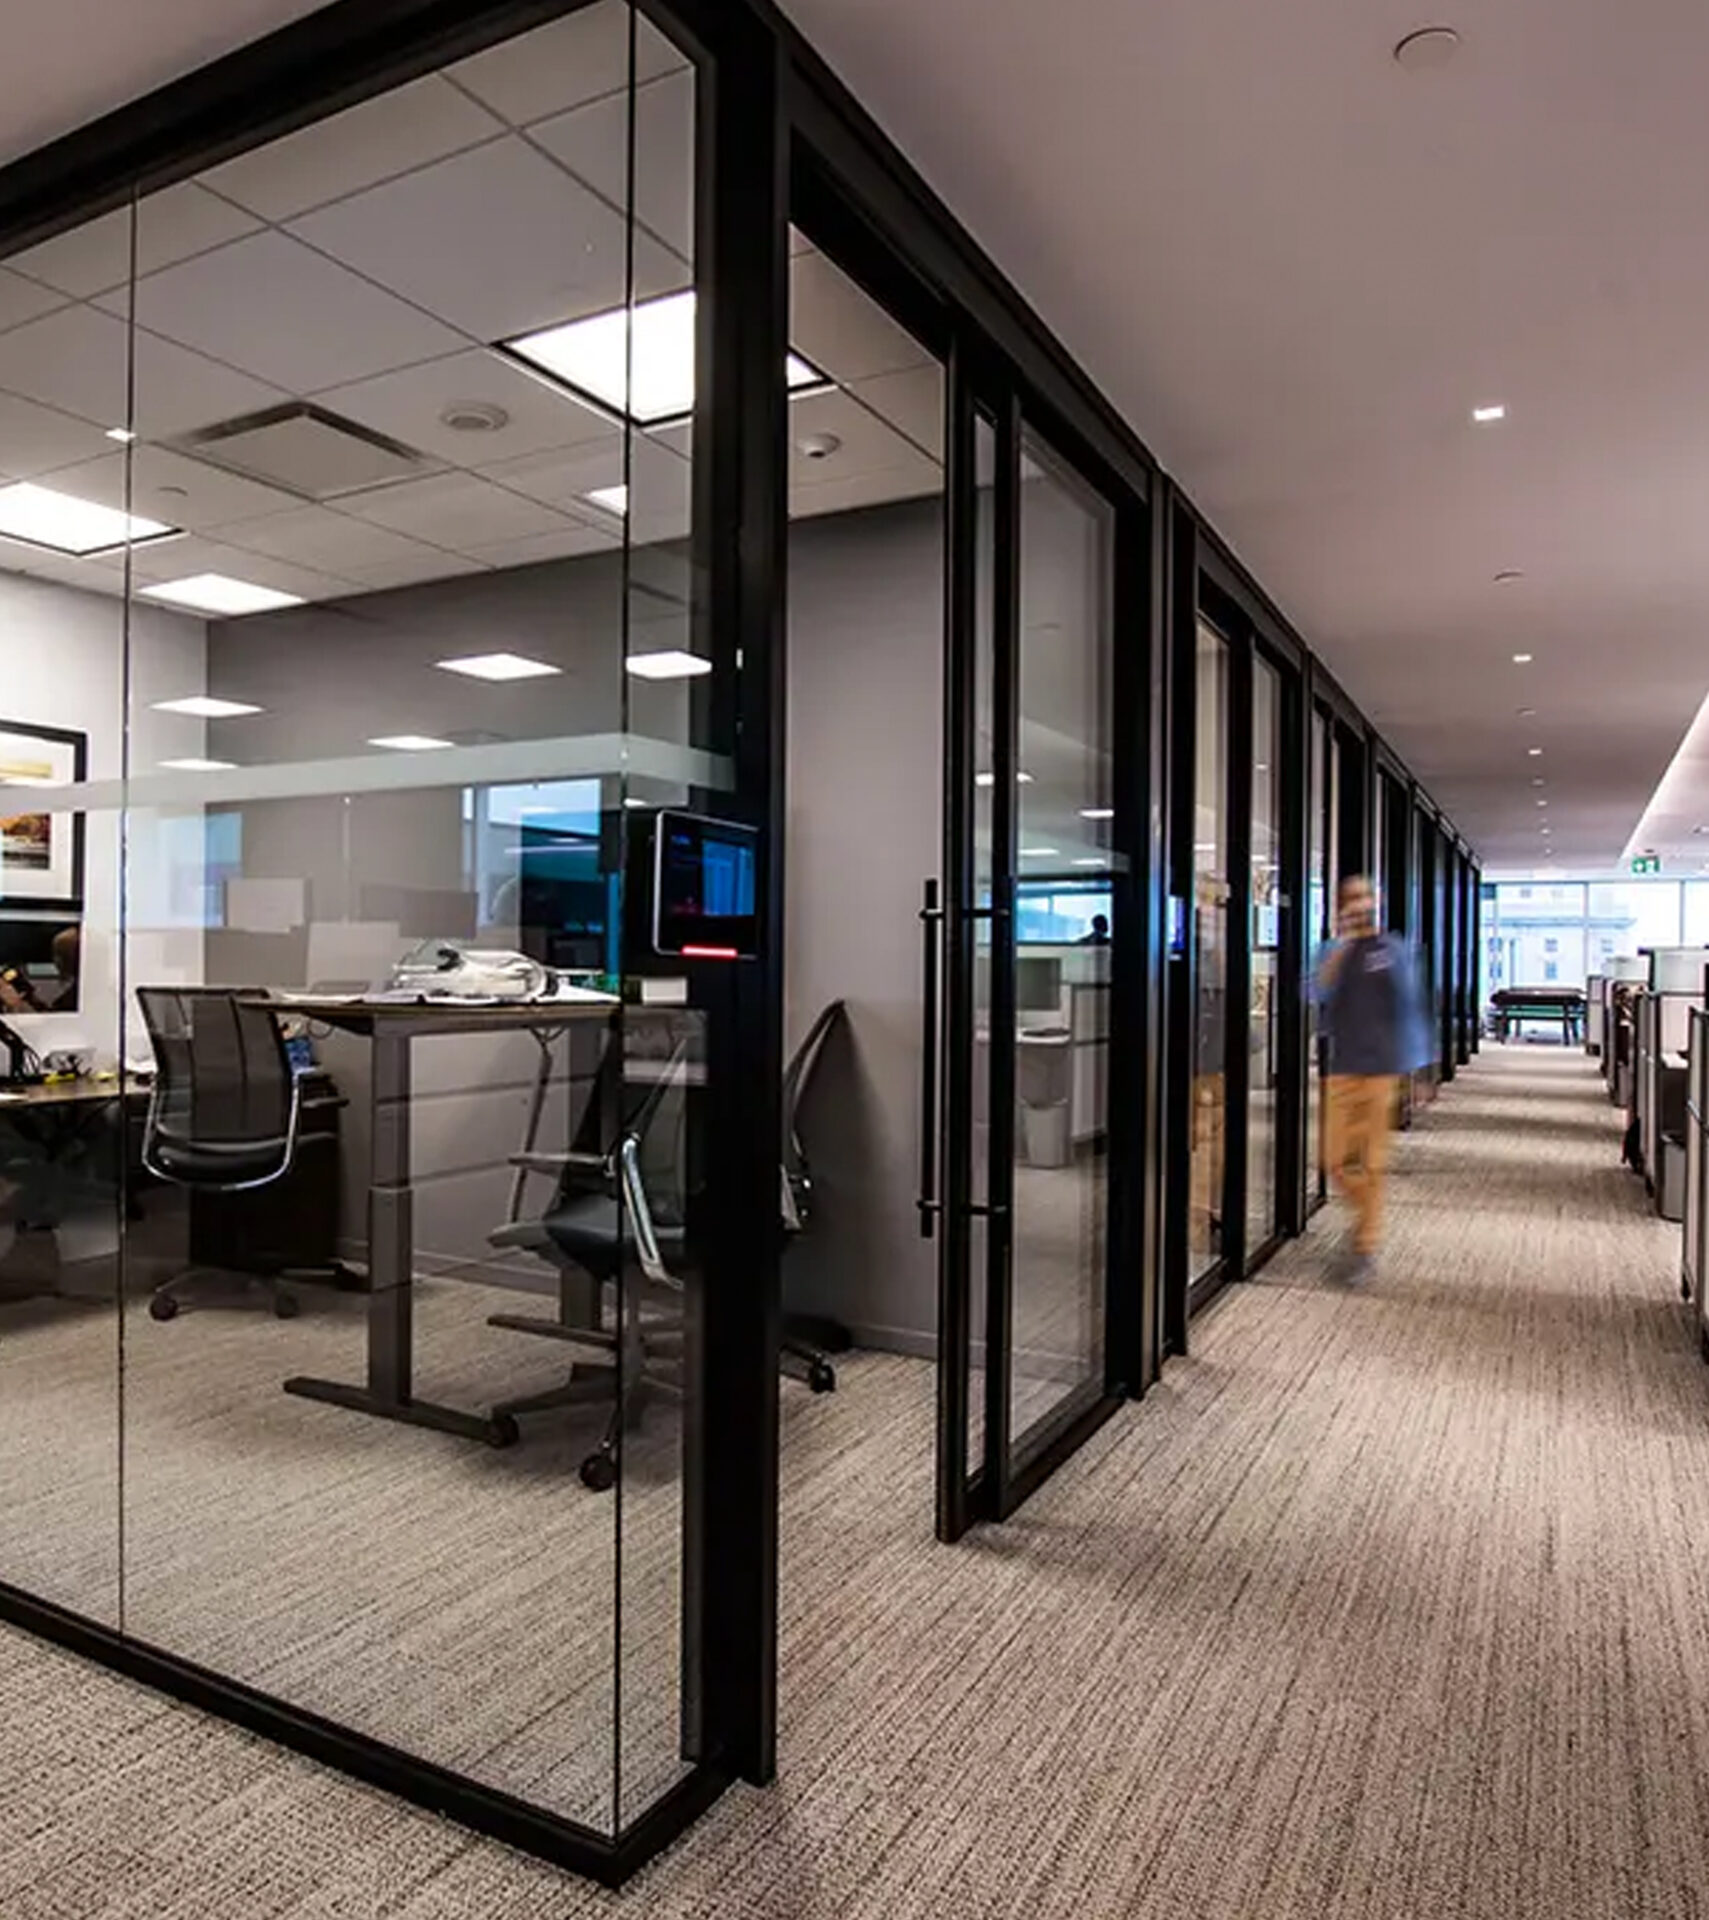 Starwall integrated glass wall systems shown in center-mount glass in black frame with frameless butt-joint glass.